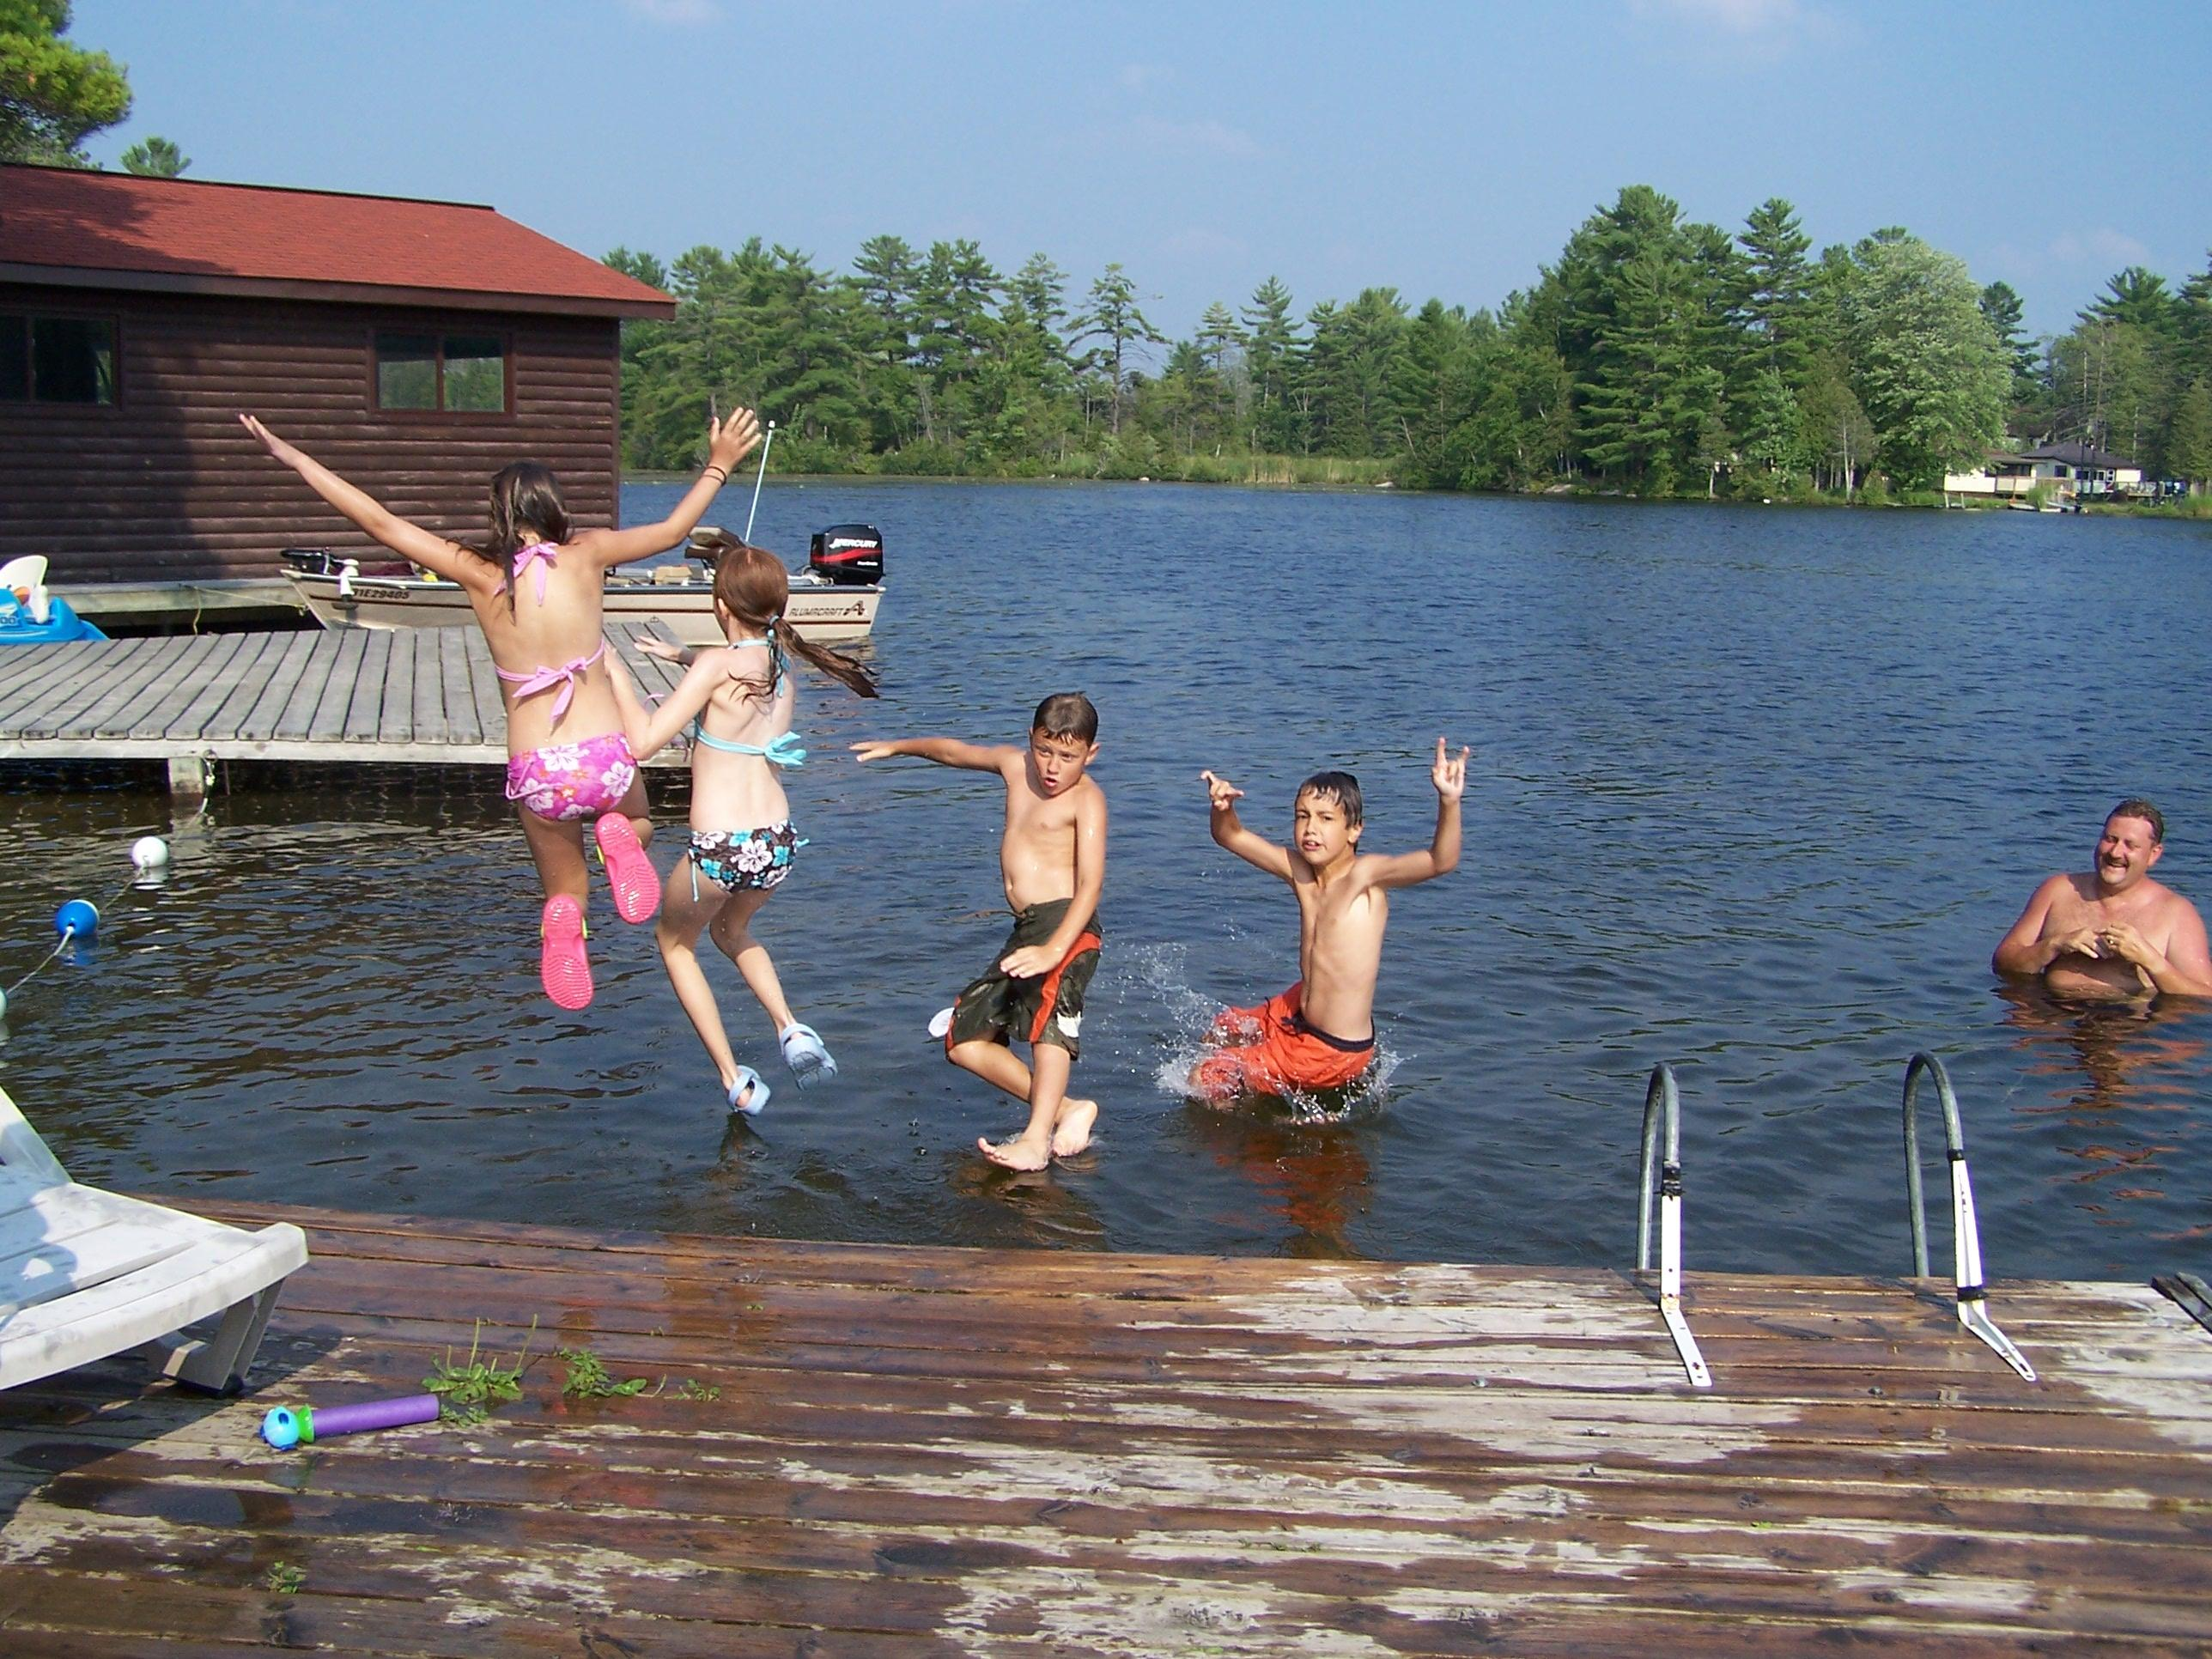 lake blog new rentals silent parks at parksblog ontario dsc cottage cabins